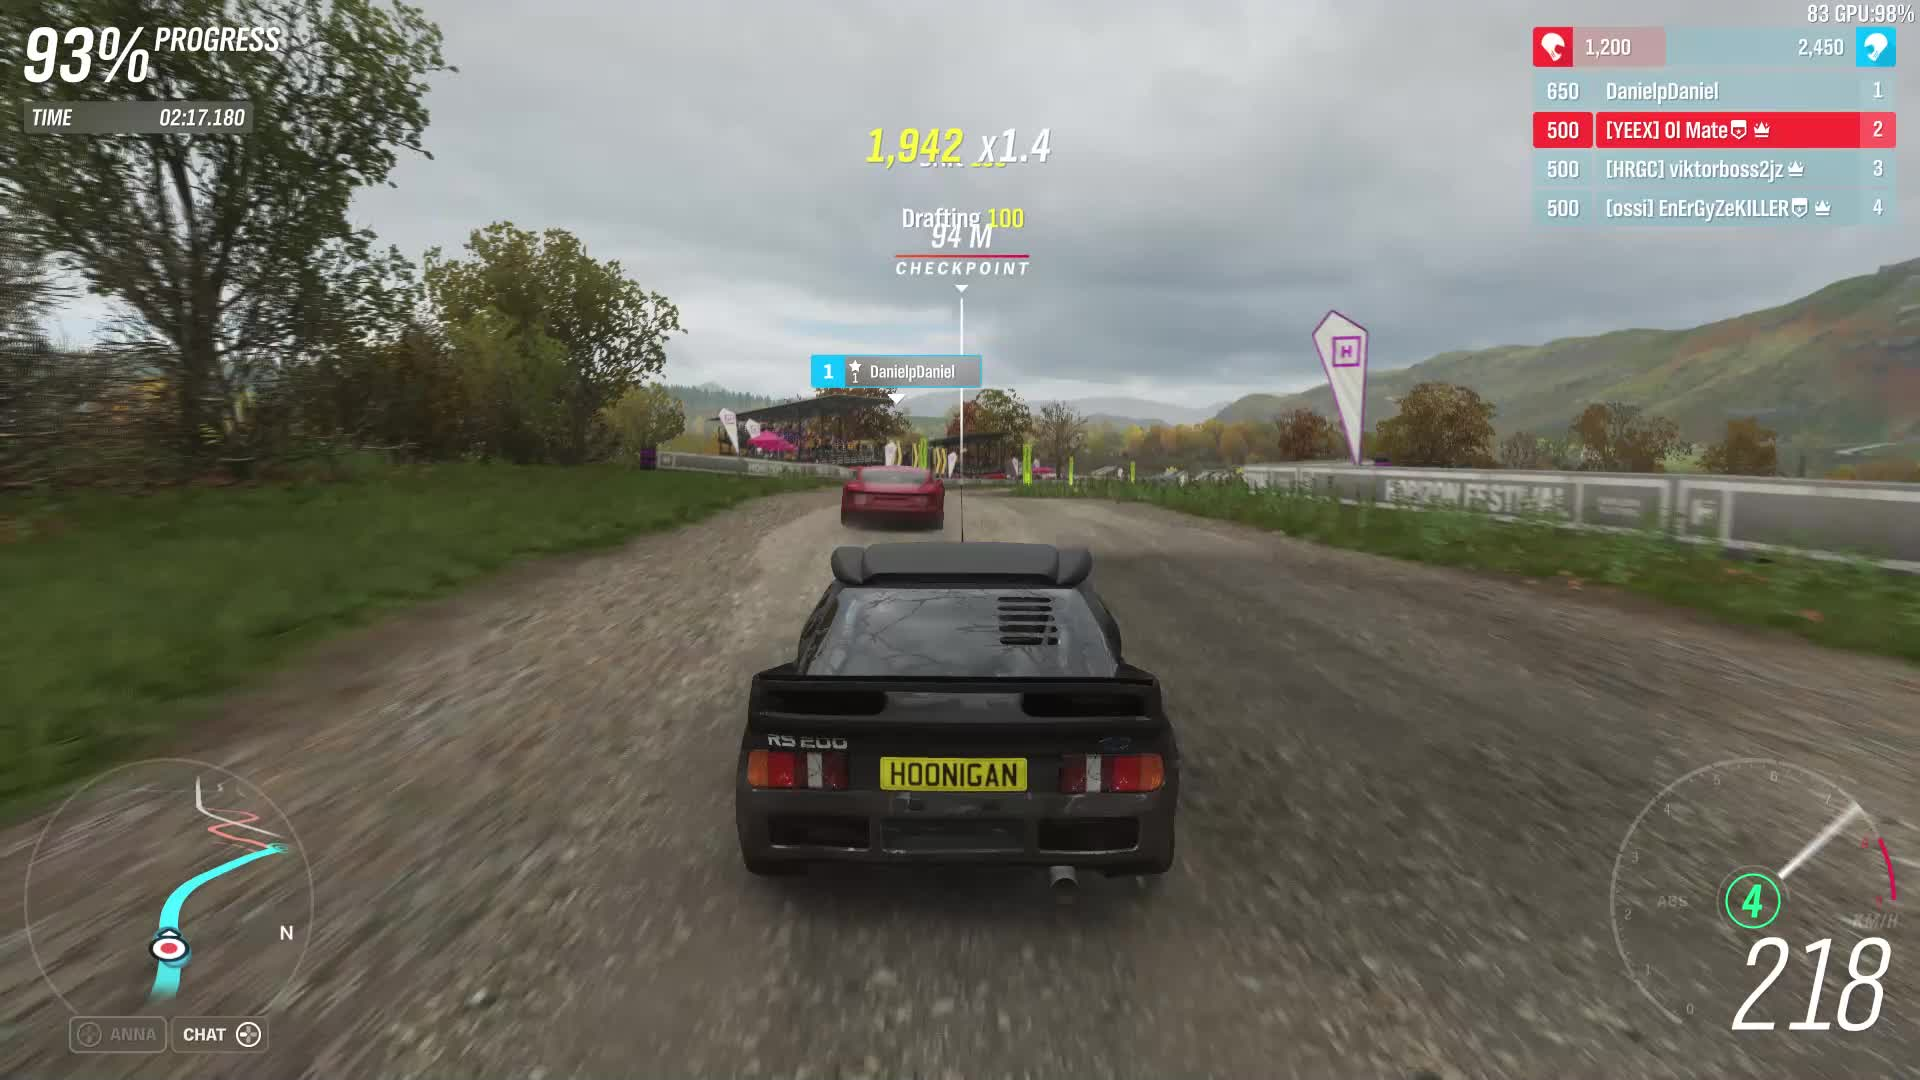 Forza Horizon 2 Gifs Search   Search & Share on Homdor